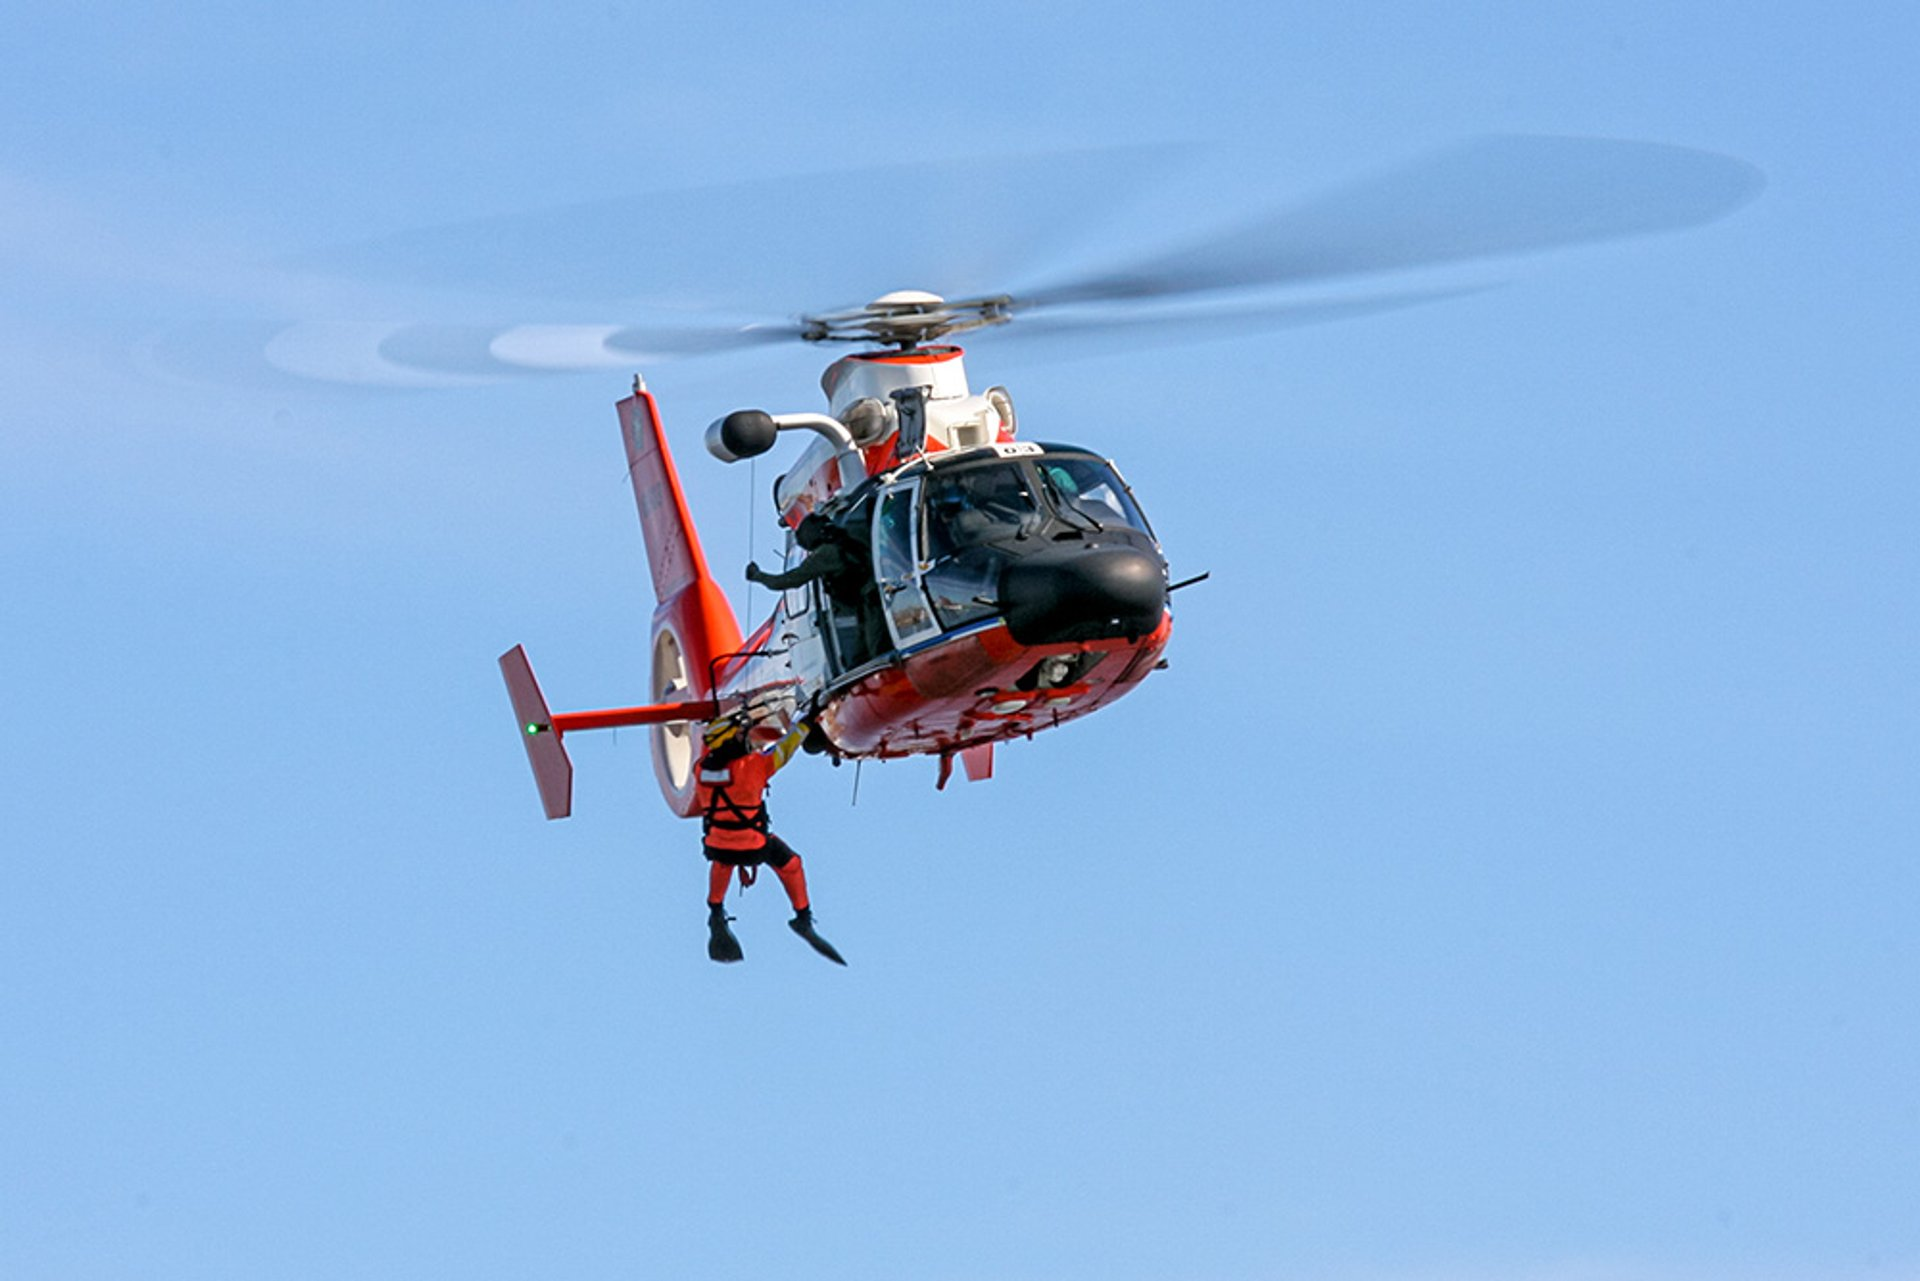 USCG SAR Demo HH-65 Dolphin conduct a rescue demonstration during rehearsal at the Baltimore Fleet Week Air Show 2020